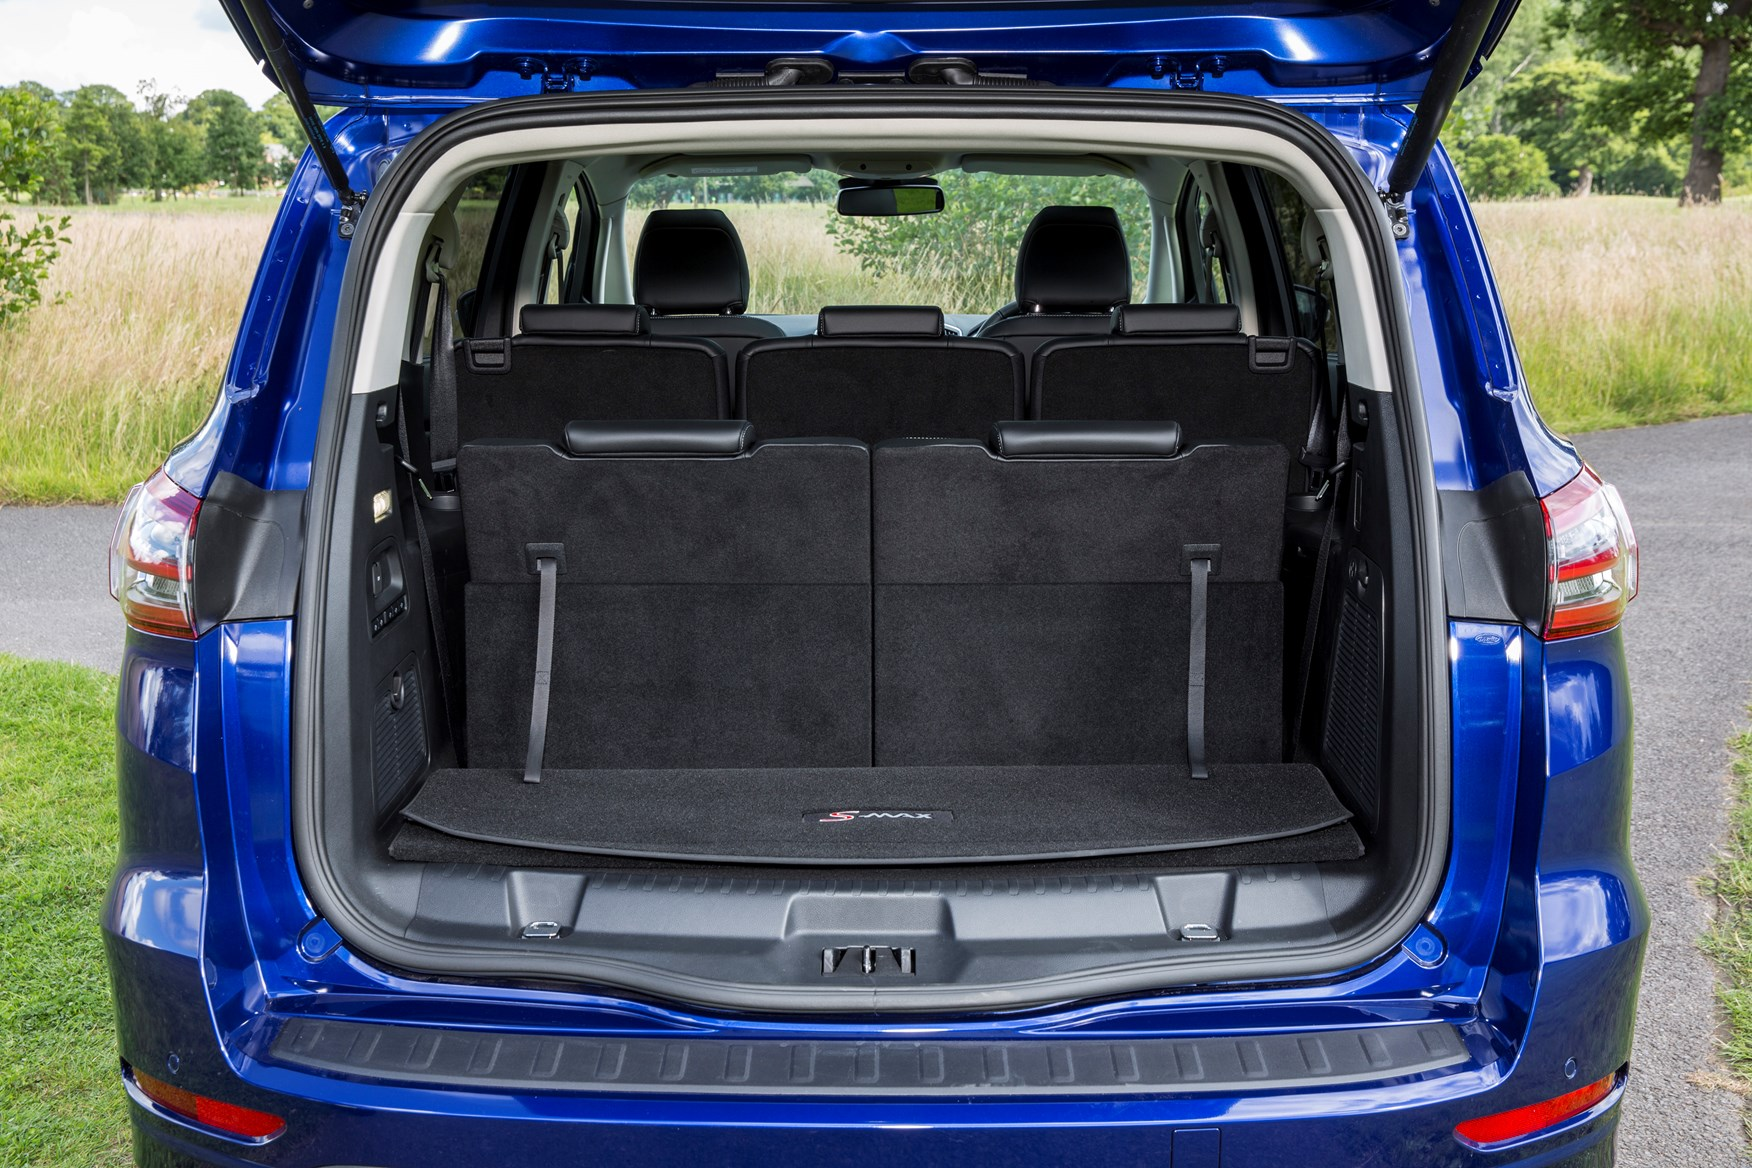 Image Result For Ford Kuga Boot Space Litres